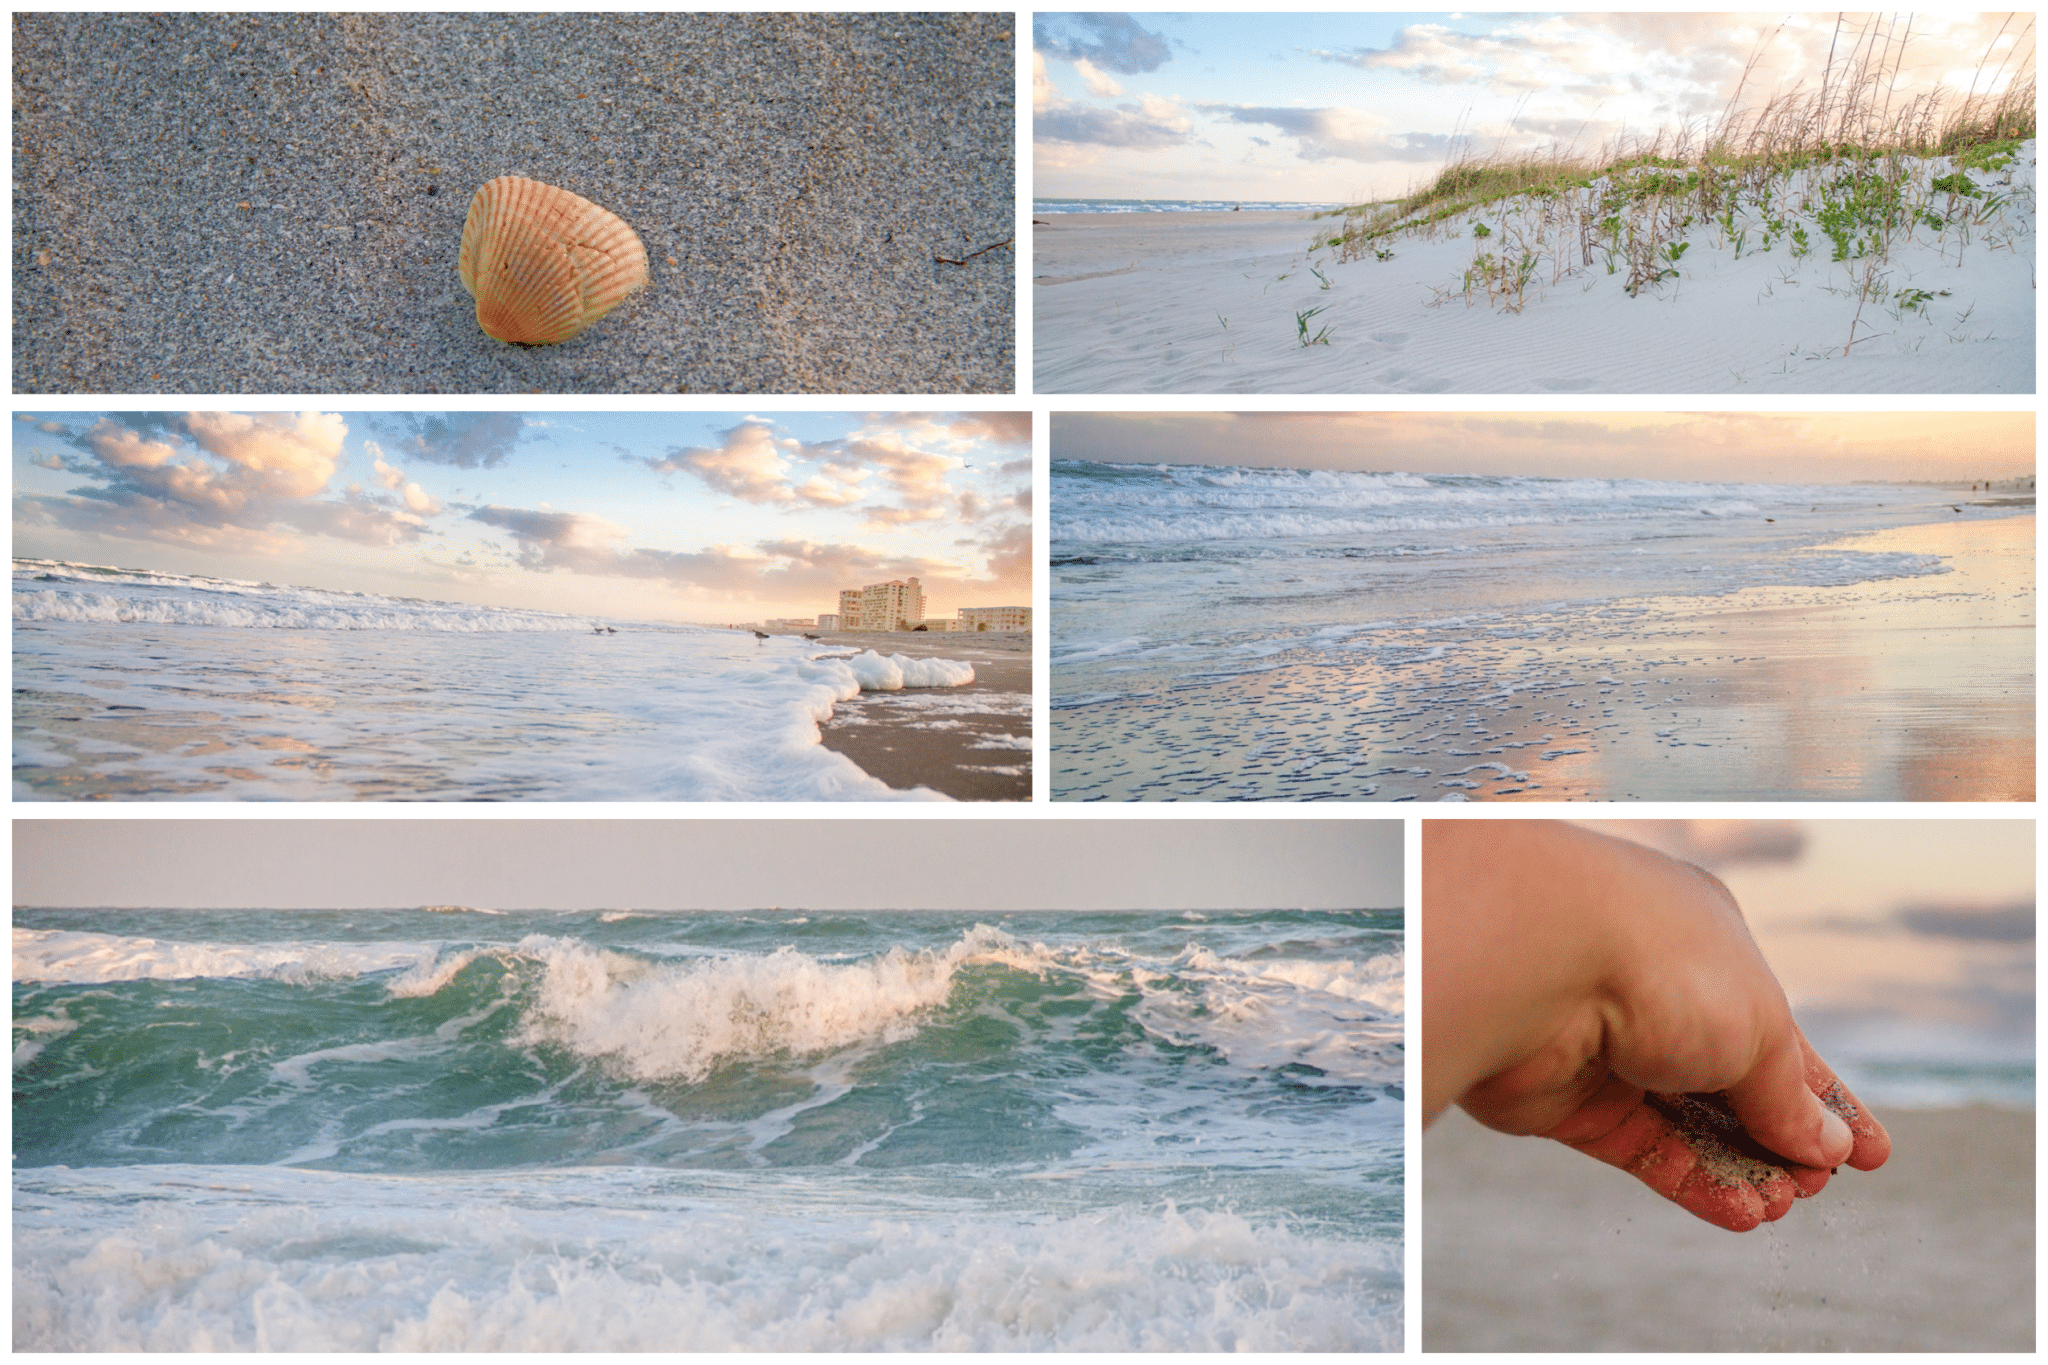 Cocoa beach collage of cocoa beach photography at sunset, waves, sand, shell and sunset